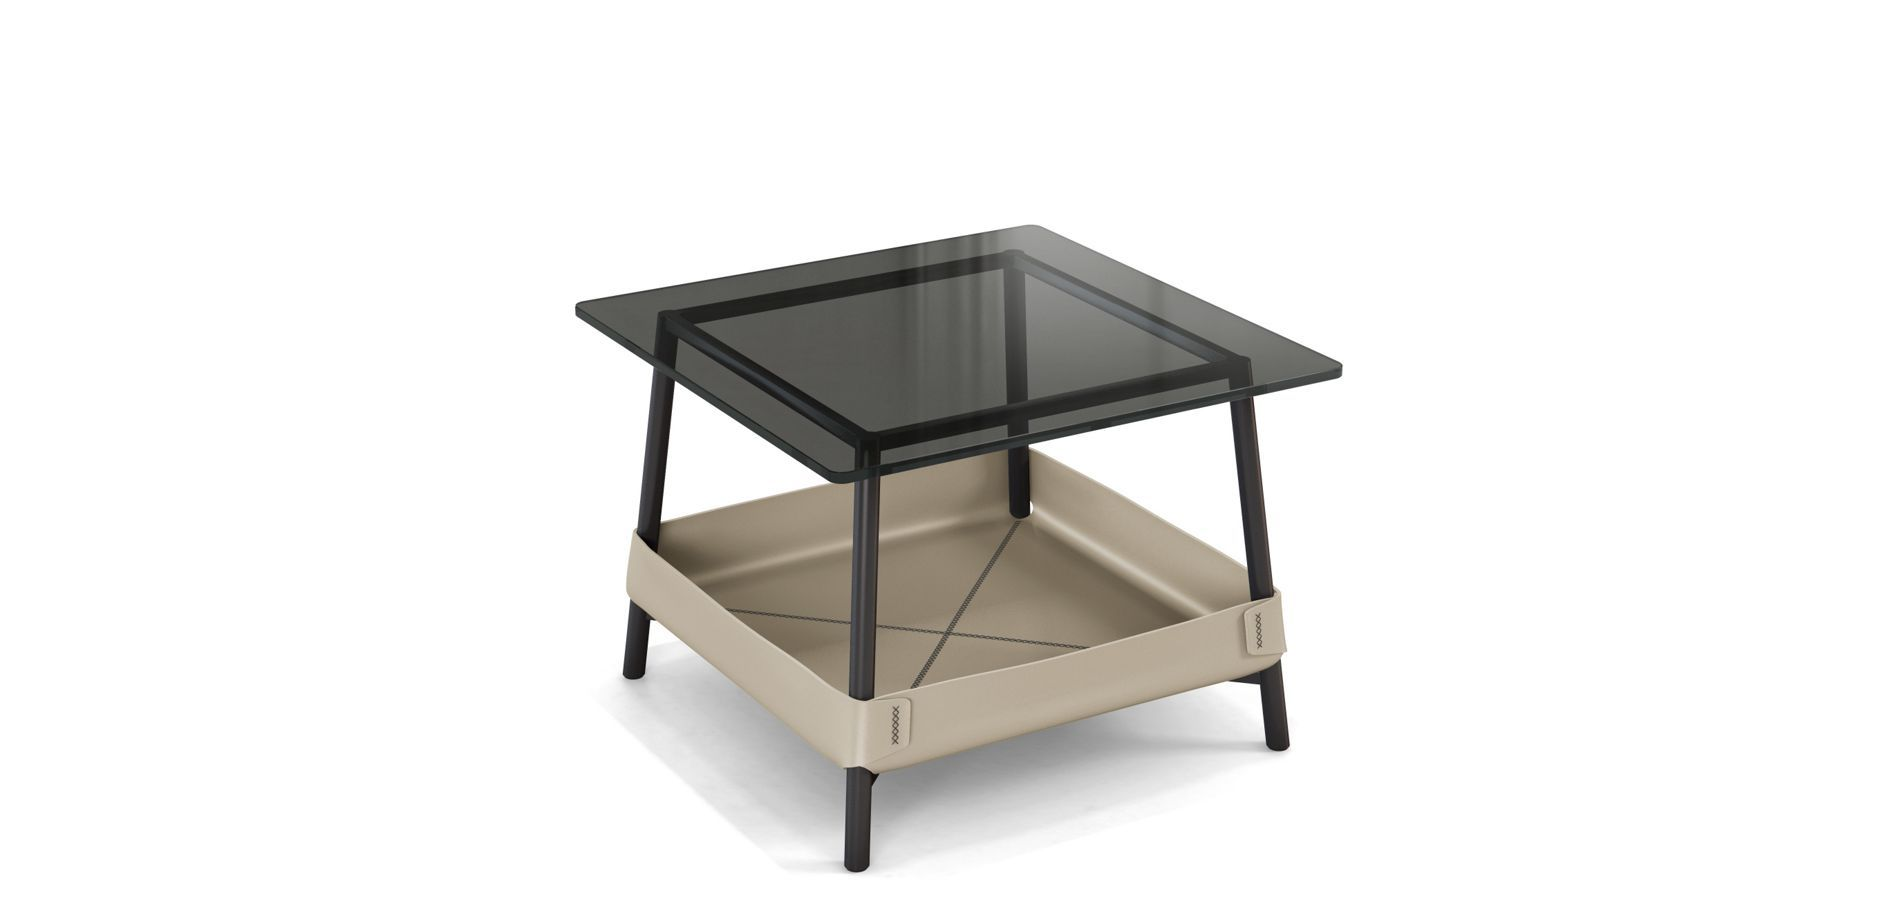 end table with top thick smoked glass steel tube legs tables black lacquer finish lower basket split leather many colours available large white crate luxury dining design sofa